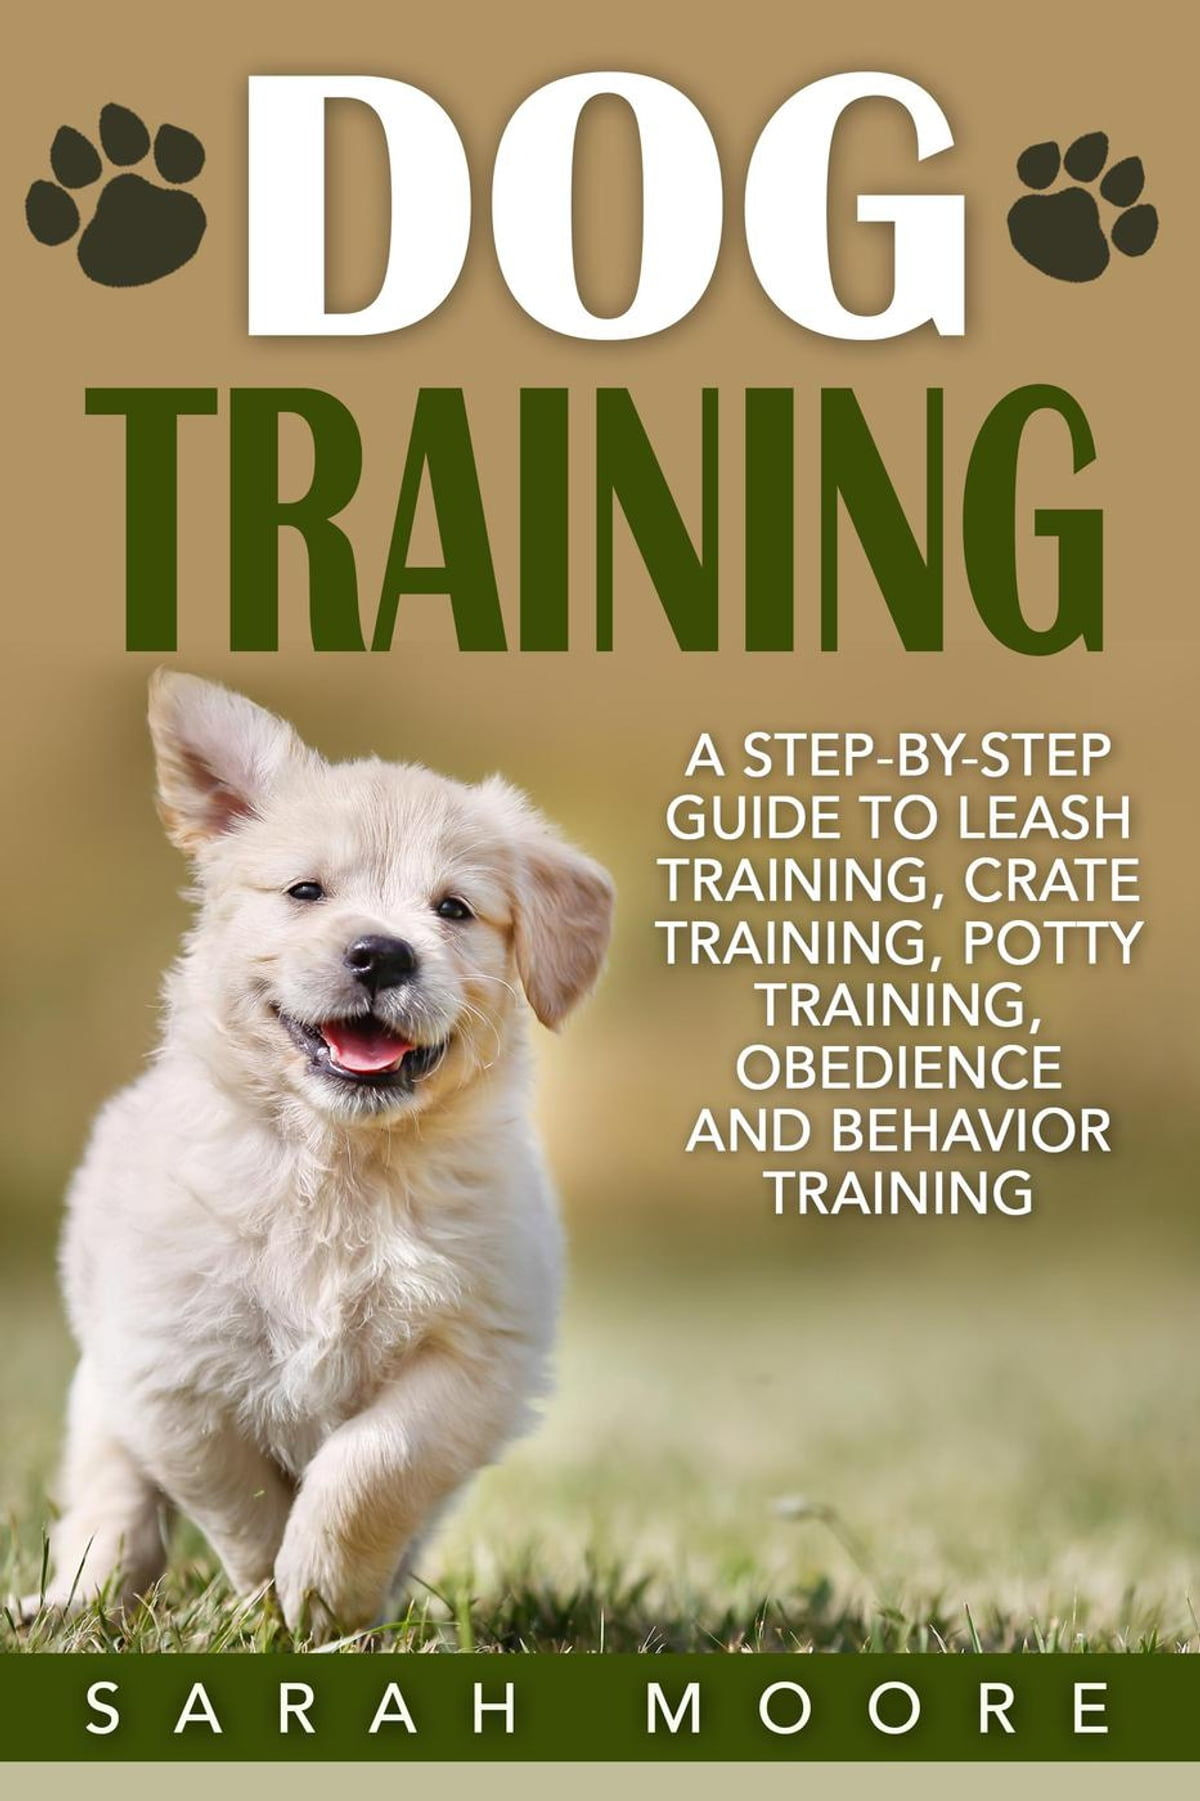 Dog Training: A Step-by-Step Guide to Leash Training, Crate Training, Potty  Training, Obedience and Behavior Training eBook by Sarah Moore -  9781386733874 ...